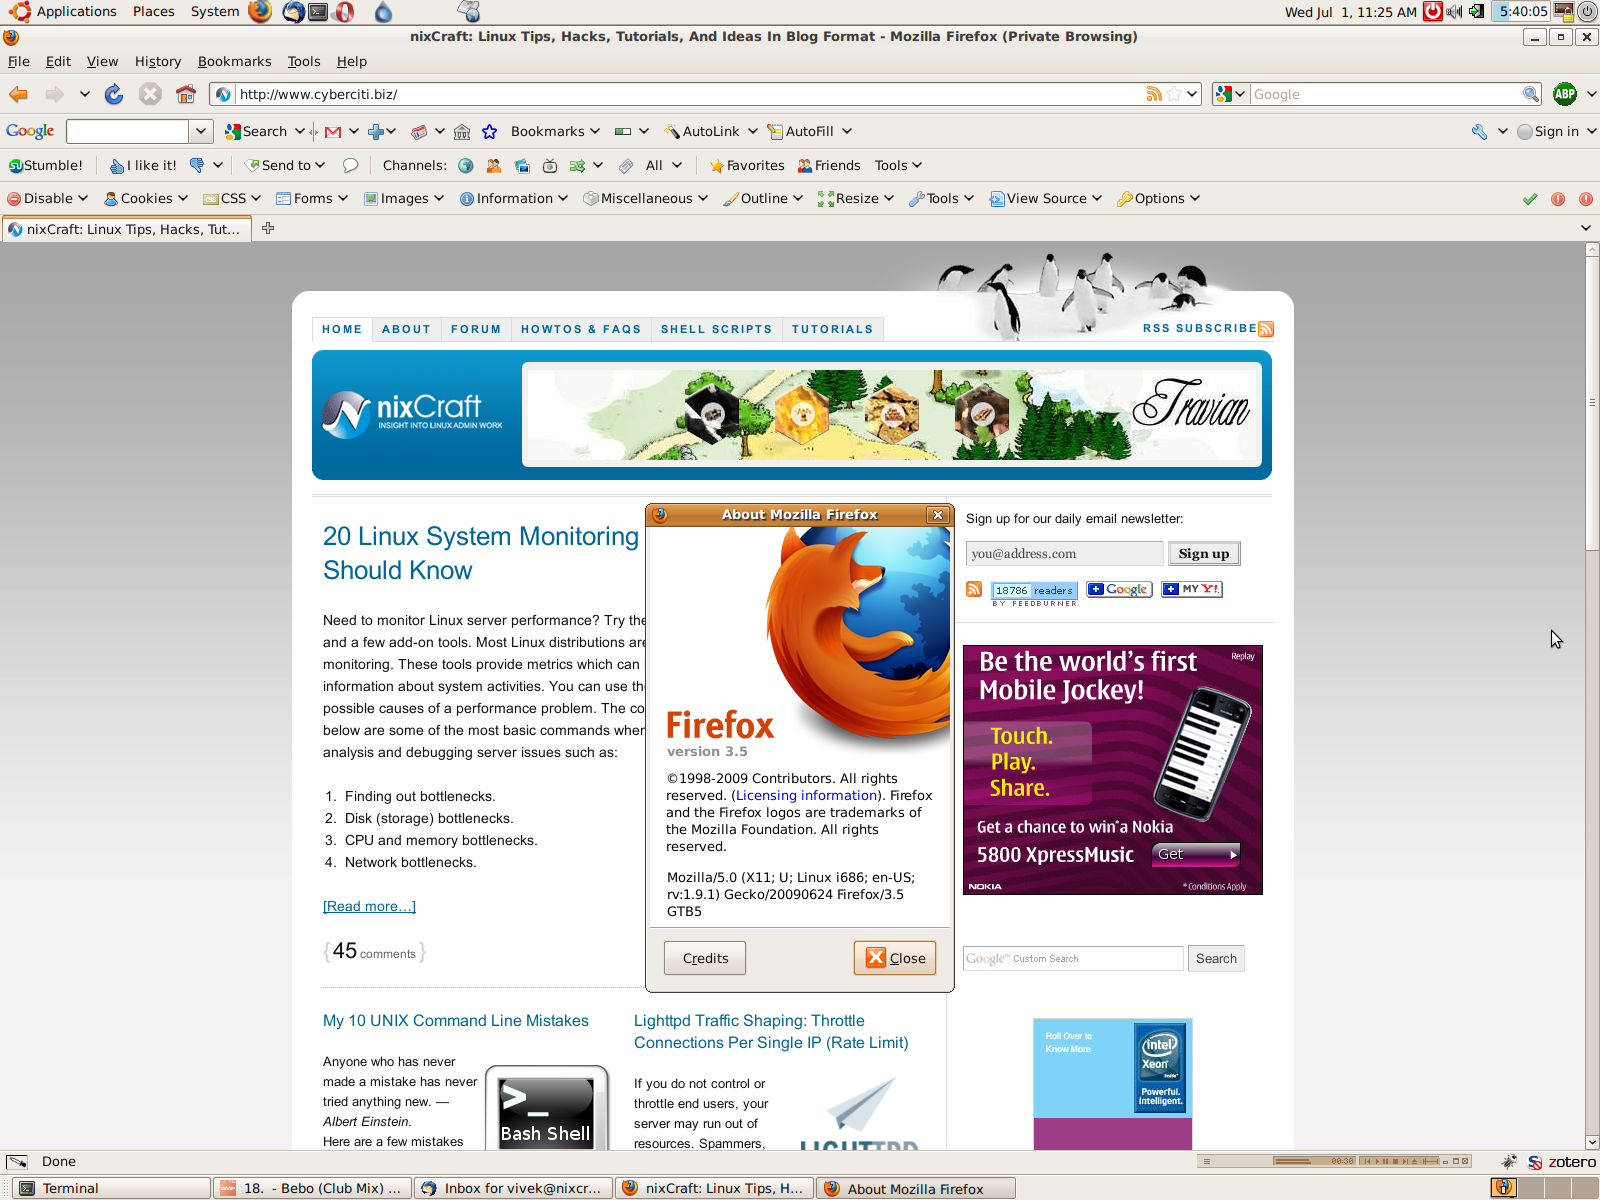 Download Of the Day: Firefox 3 5 For Windows, Linux, Mac OS X - nixCraft